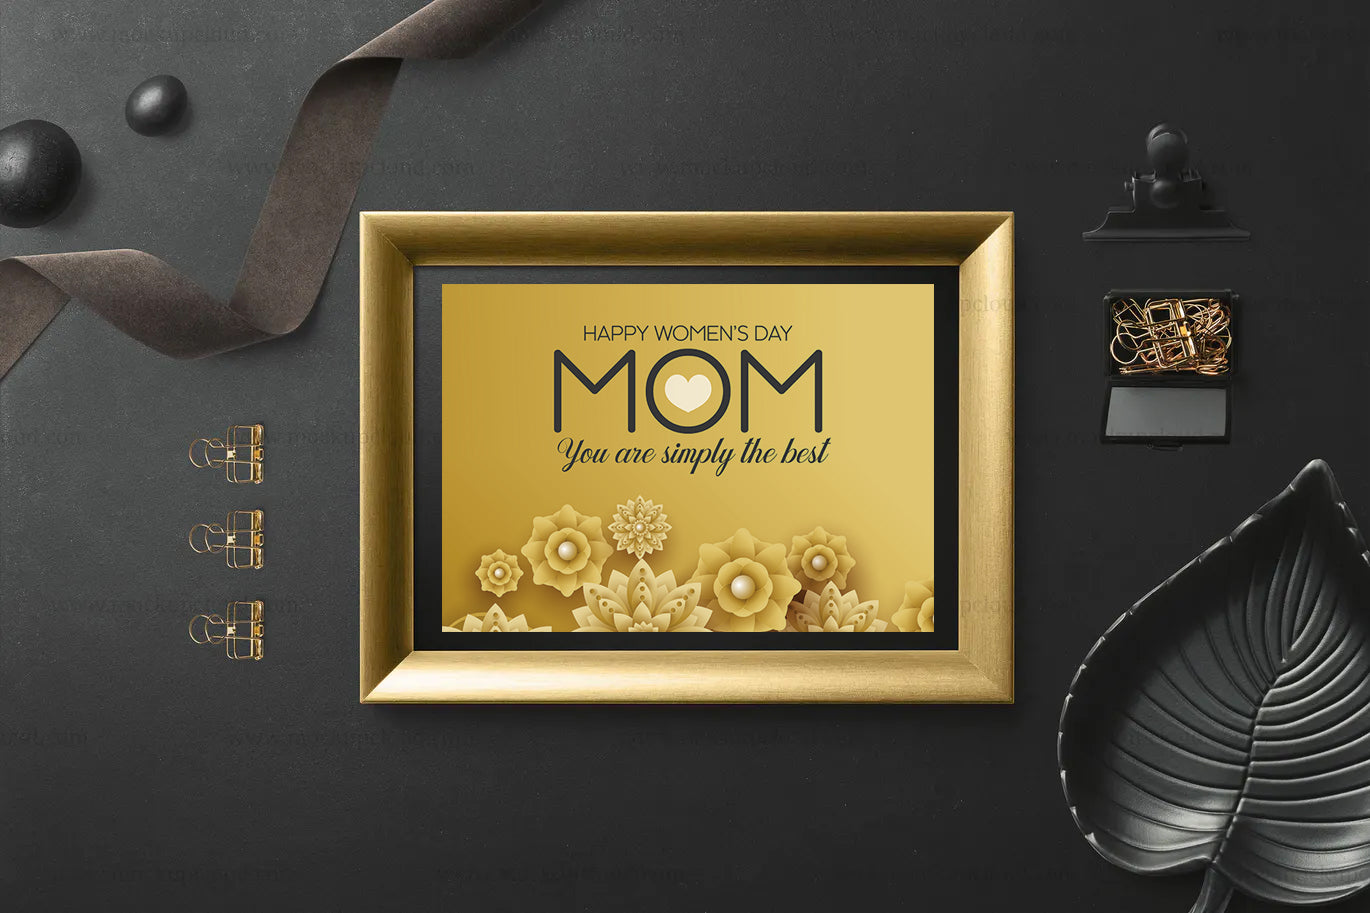 Mom You Are Simply The Best, Mothers Day Gift, Digital Art, Printable & Editable, INSTANT DOWNLOAD